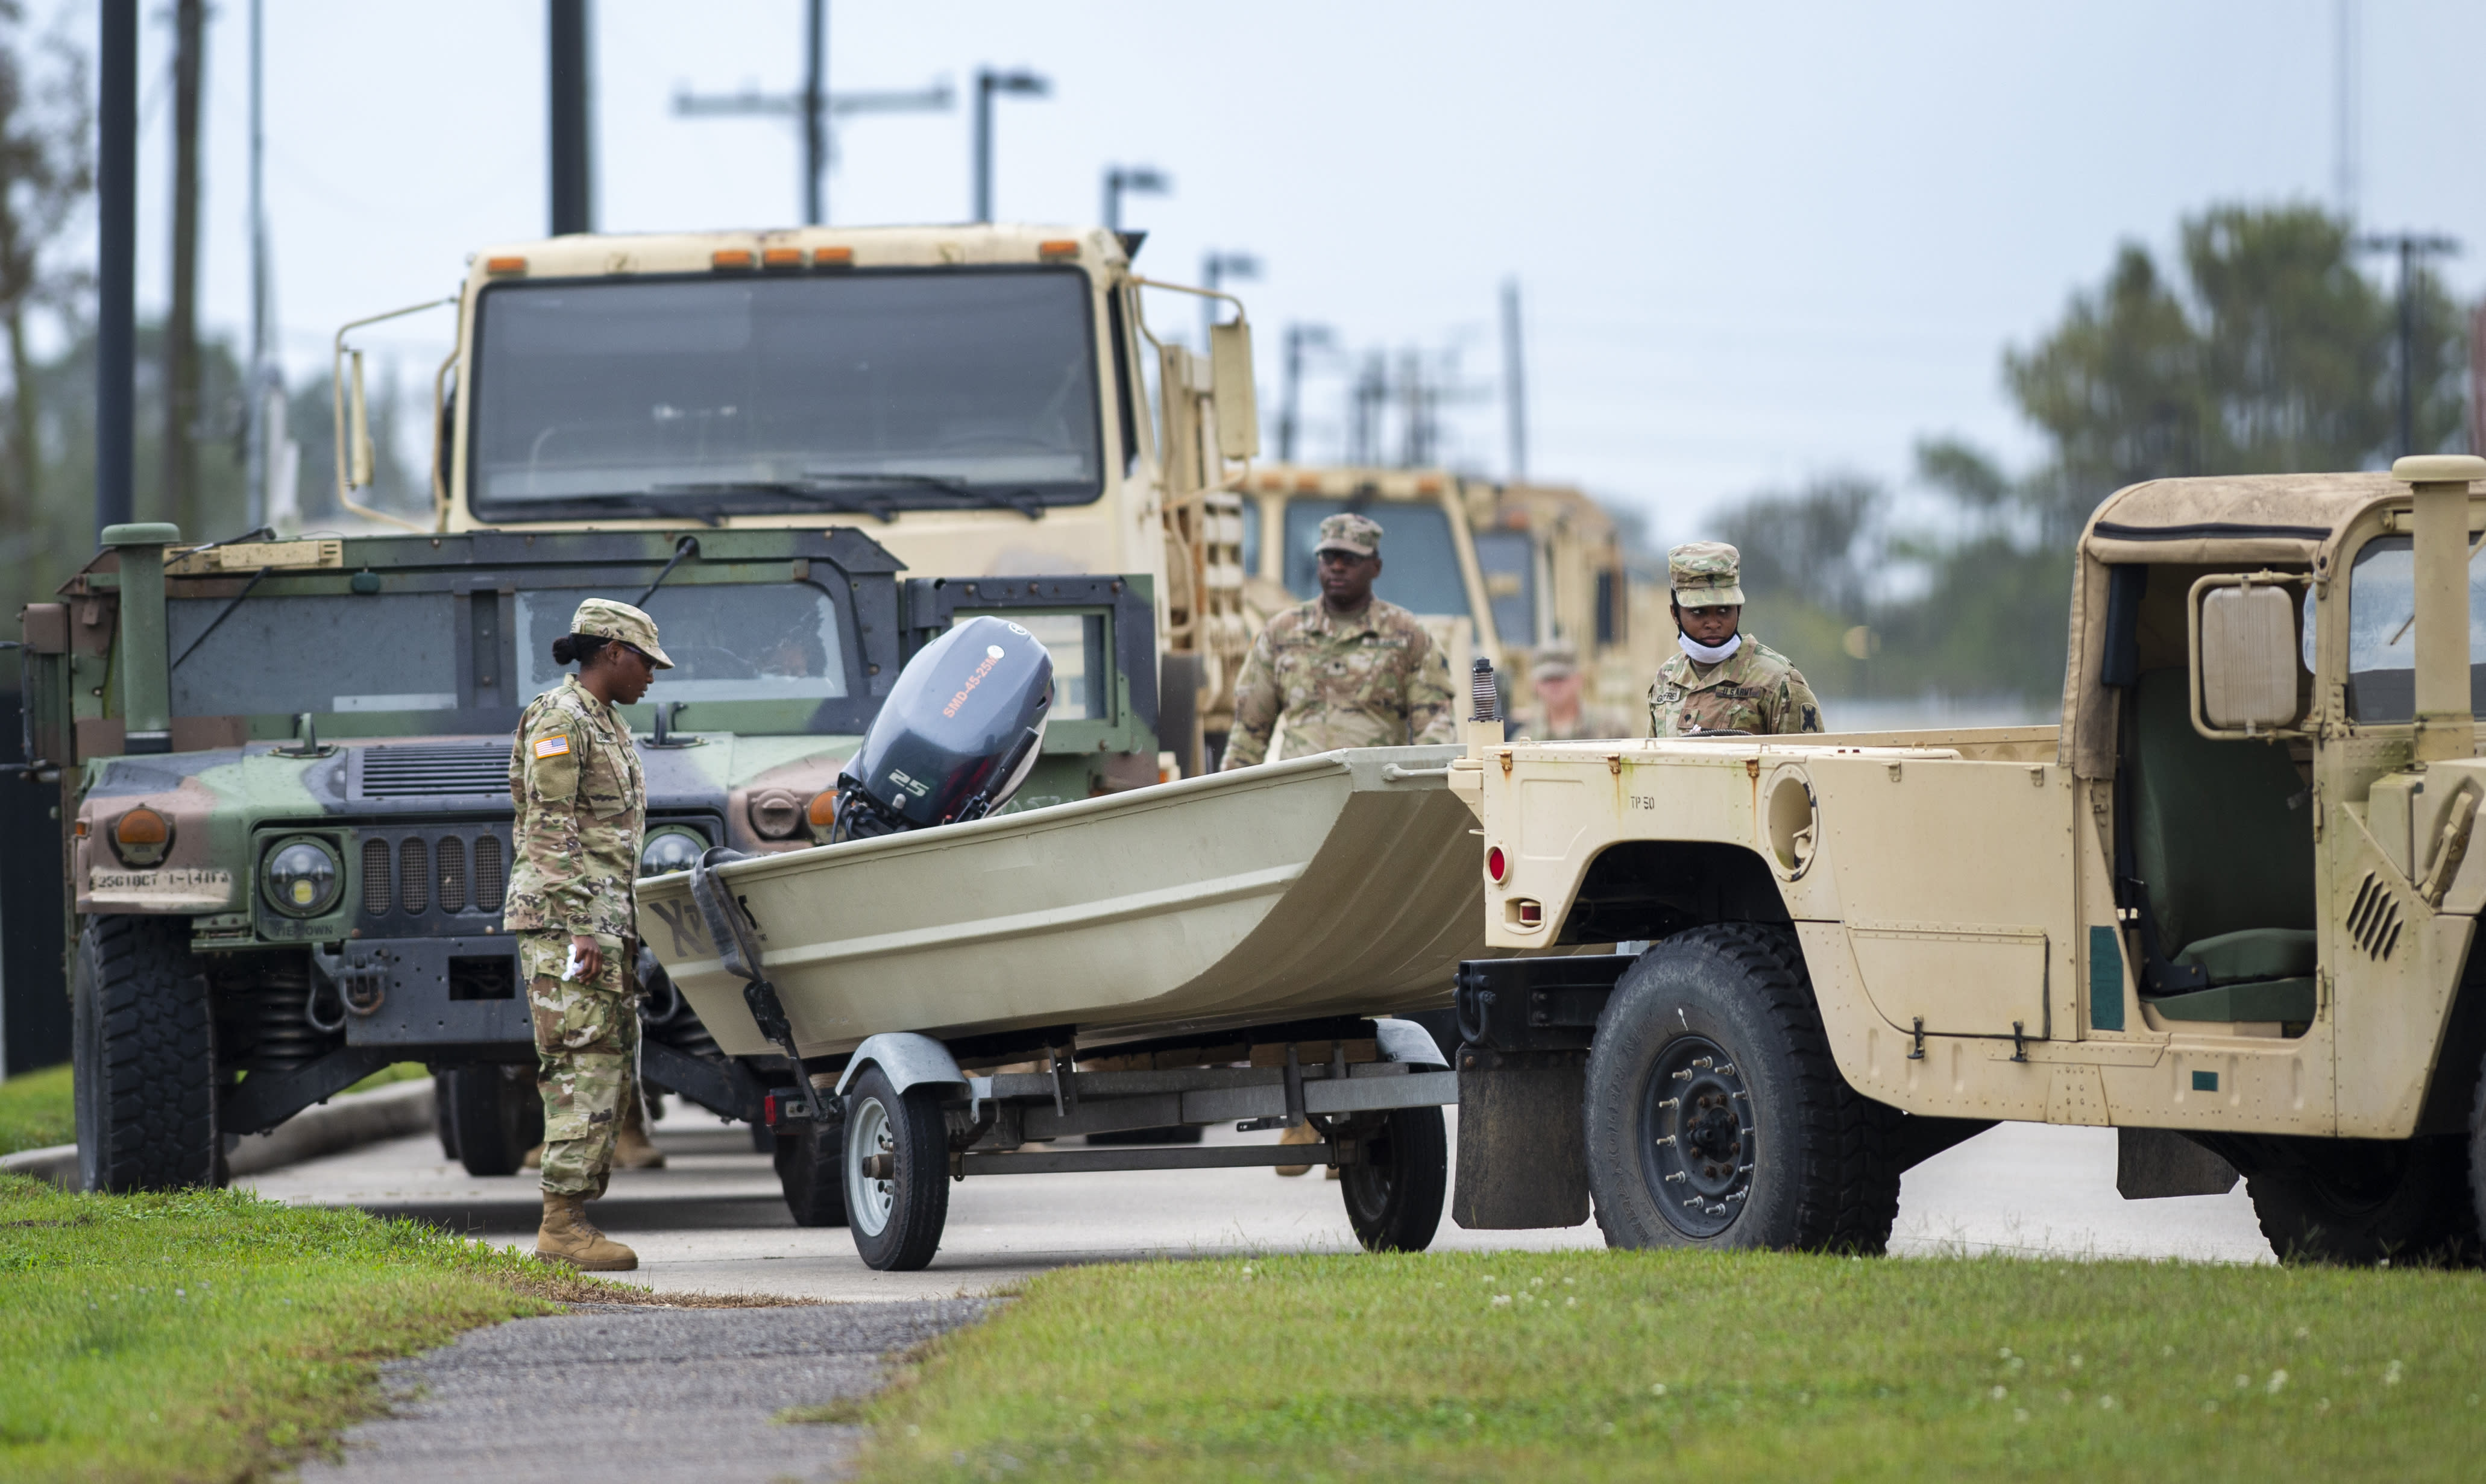 Dozens of boats trailered behind humvees are parked and ready to roll as Louisiana National Guardsmen gather in front of Jackson Barracks as the New Orleans area prepares for Hurricane Zeta on Wednesday, Oct. 28, 2020. (Chris Granger/The Times-Picayune/The New Orleans Advocate via AP)